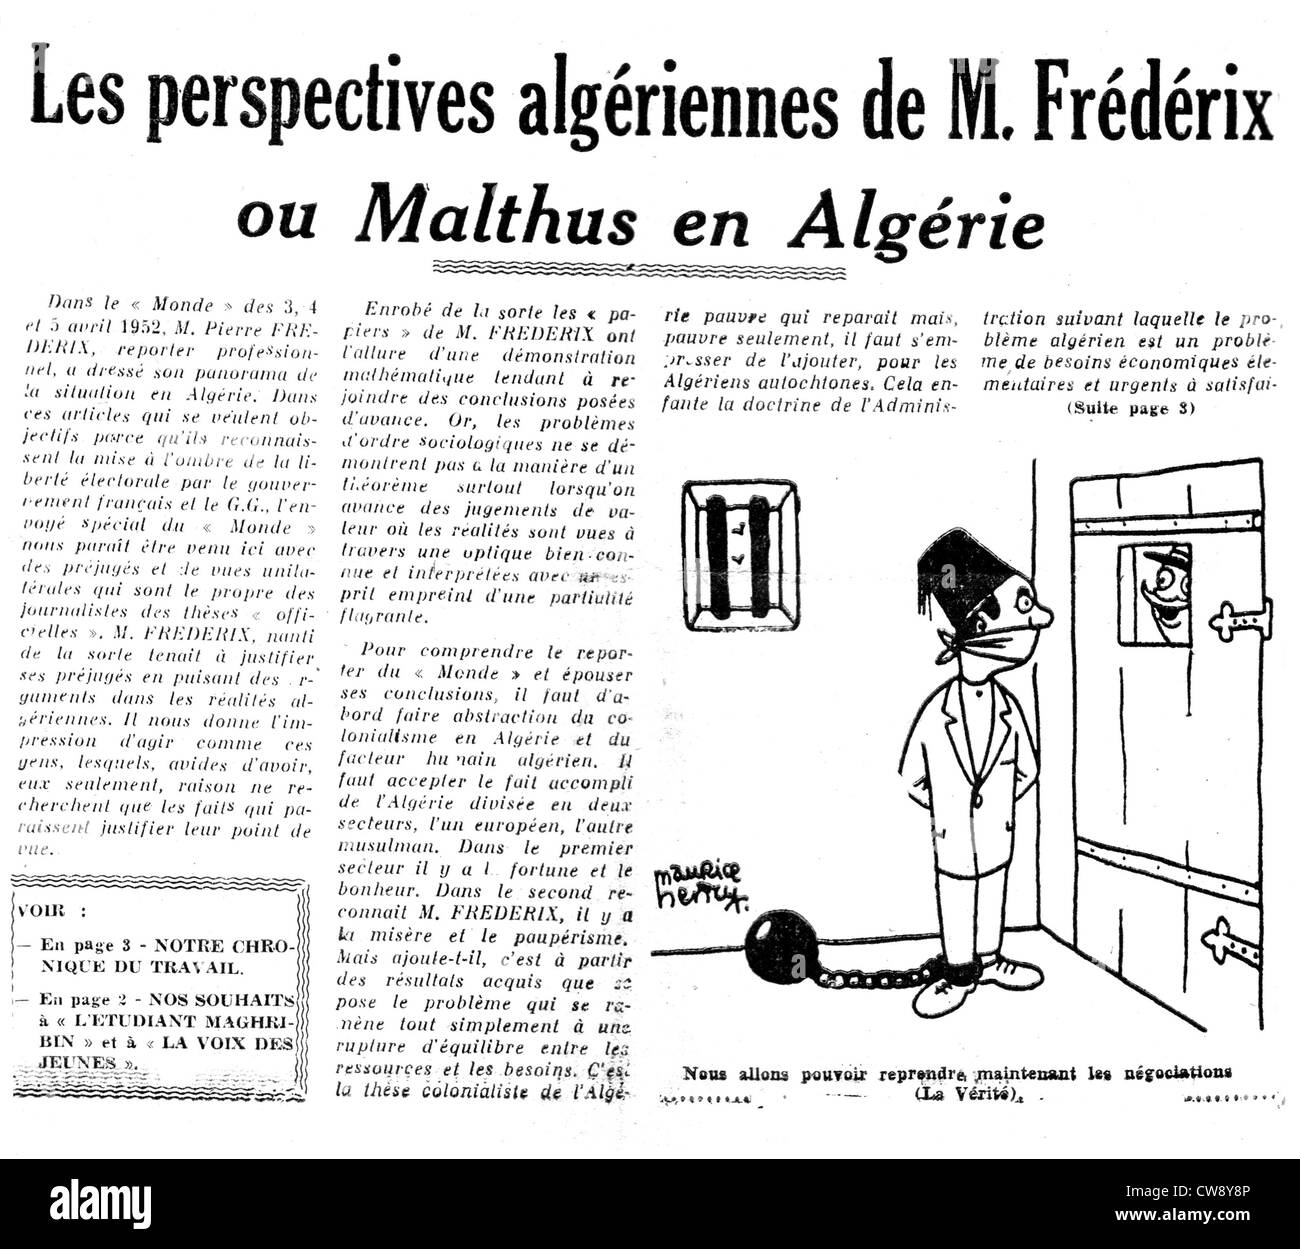 Caricature on situation in Algeria published in newspaper 'L'Algérie libre' - Stock Image